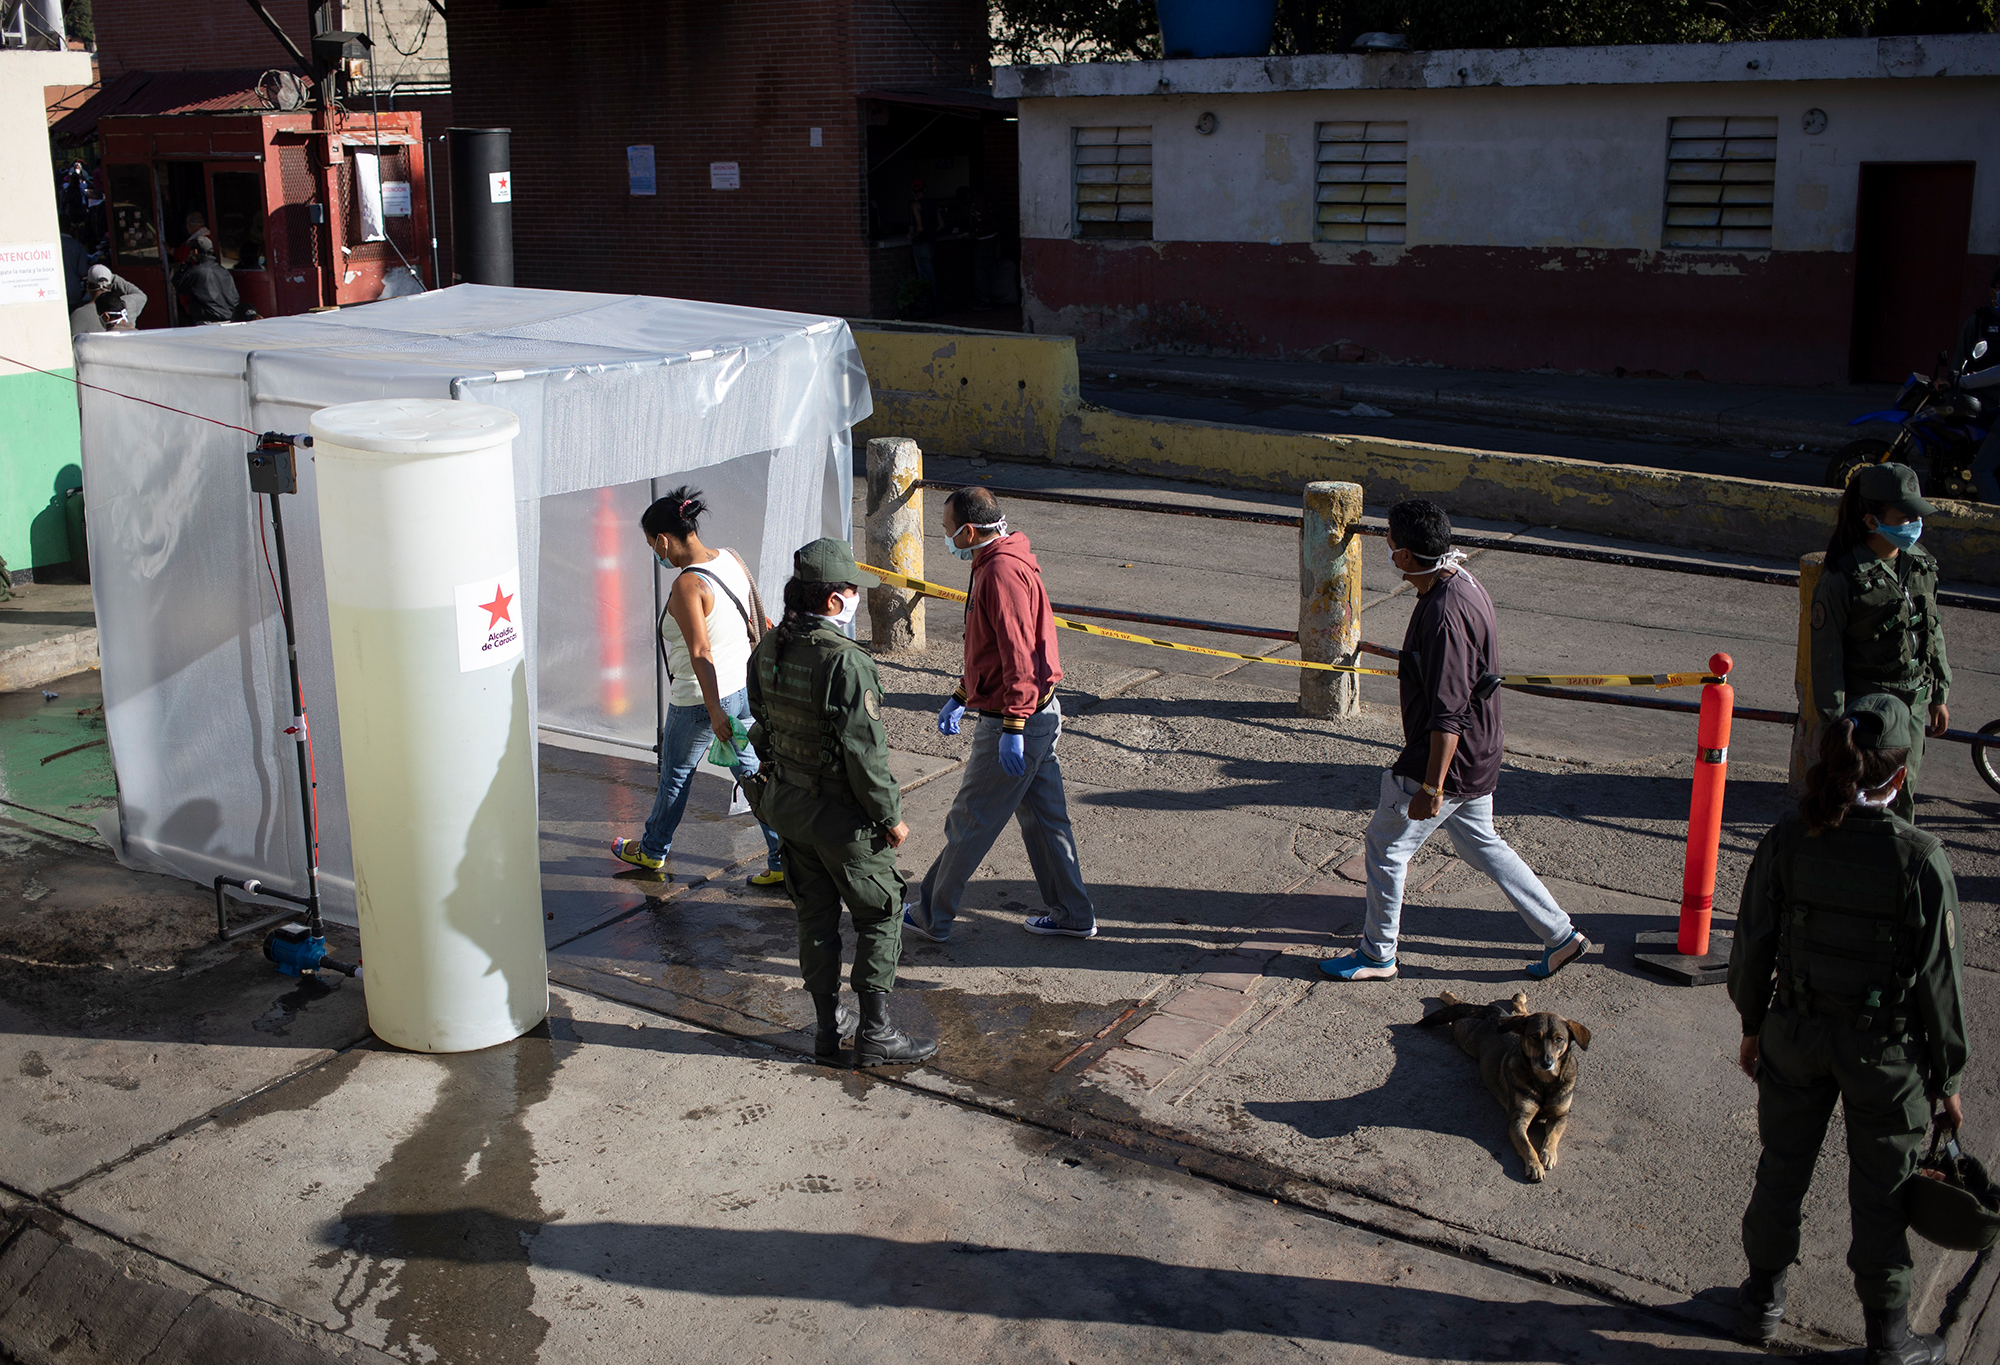 People go through a decontamination chamber as a preventive measure against the spread of the coronavirus, before entering a popular market in Caracas, Venezuela, on Wednesday, March 18.